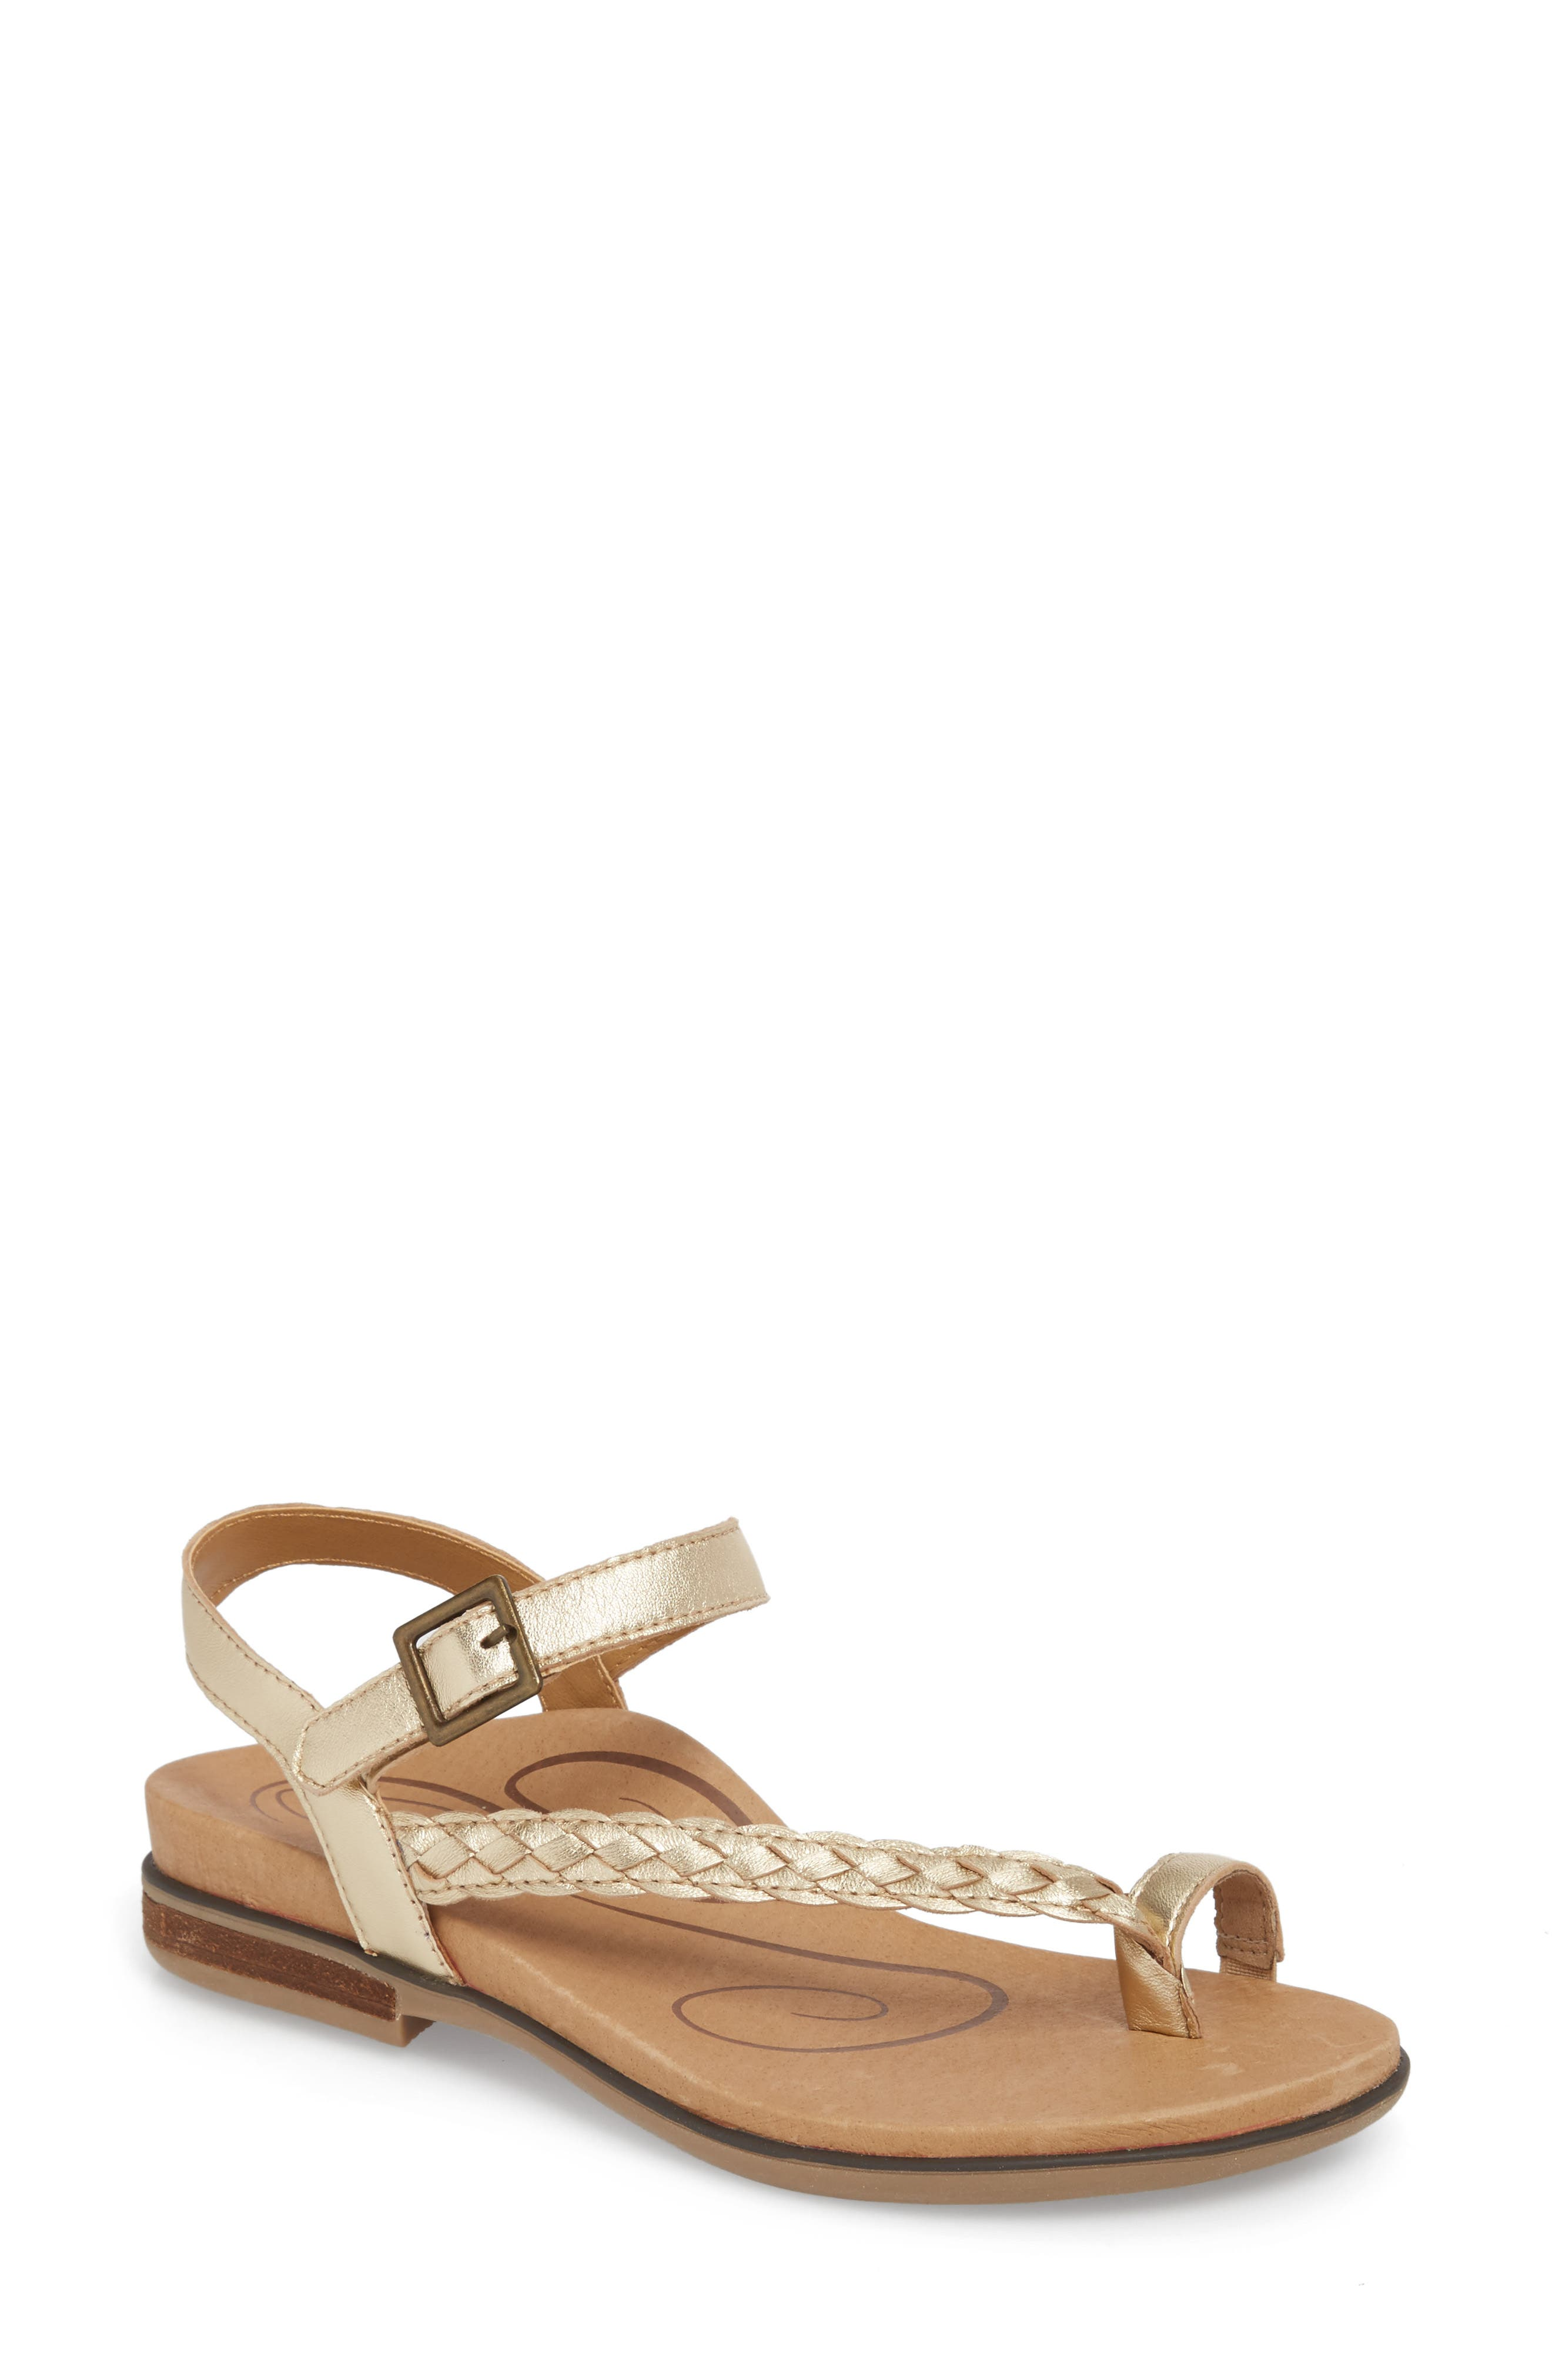 Evie Braided Strap Sandal,                             Main thumbnail 1, color,                             Gold Leather